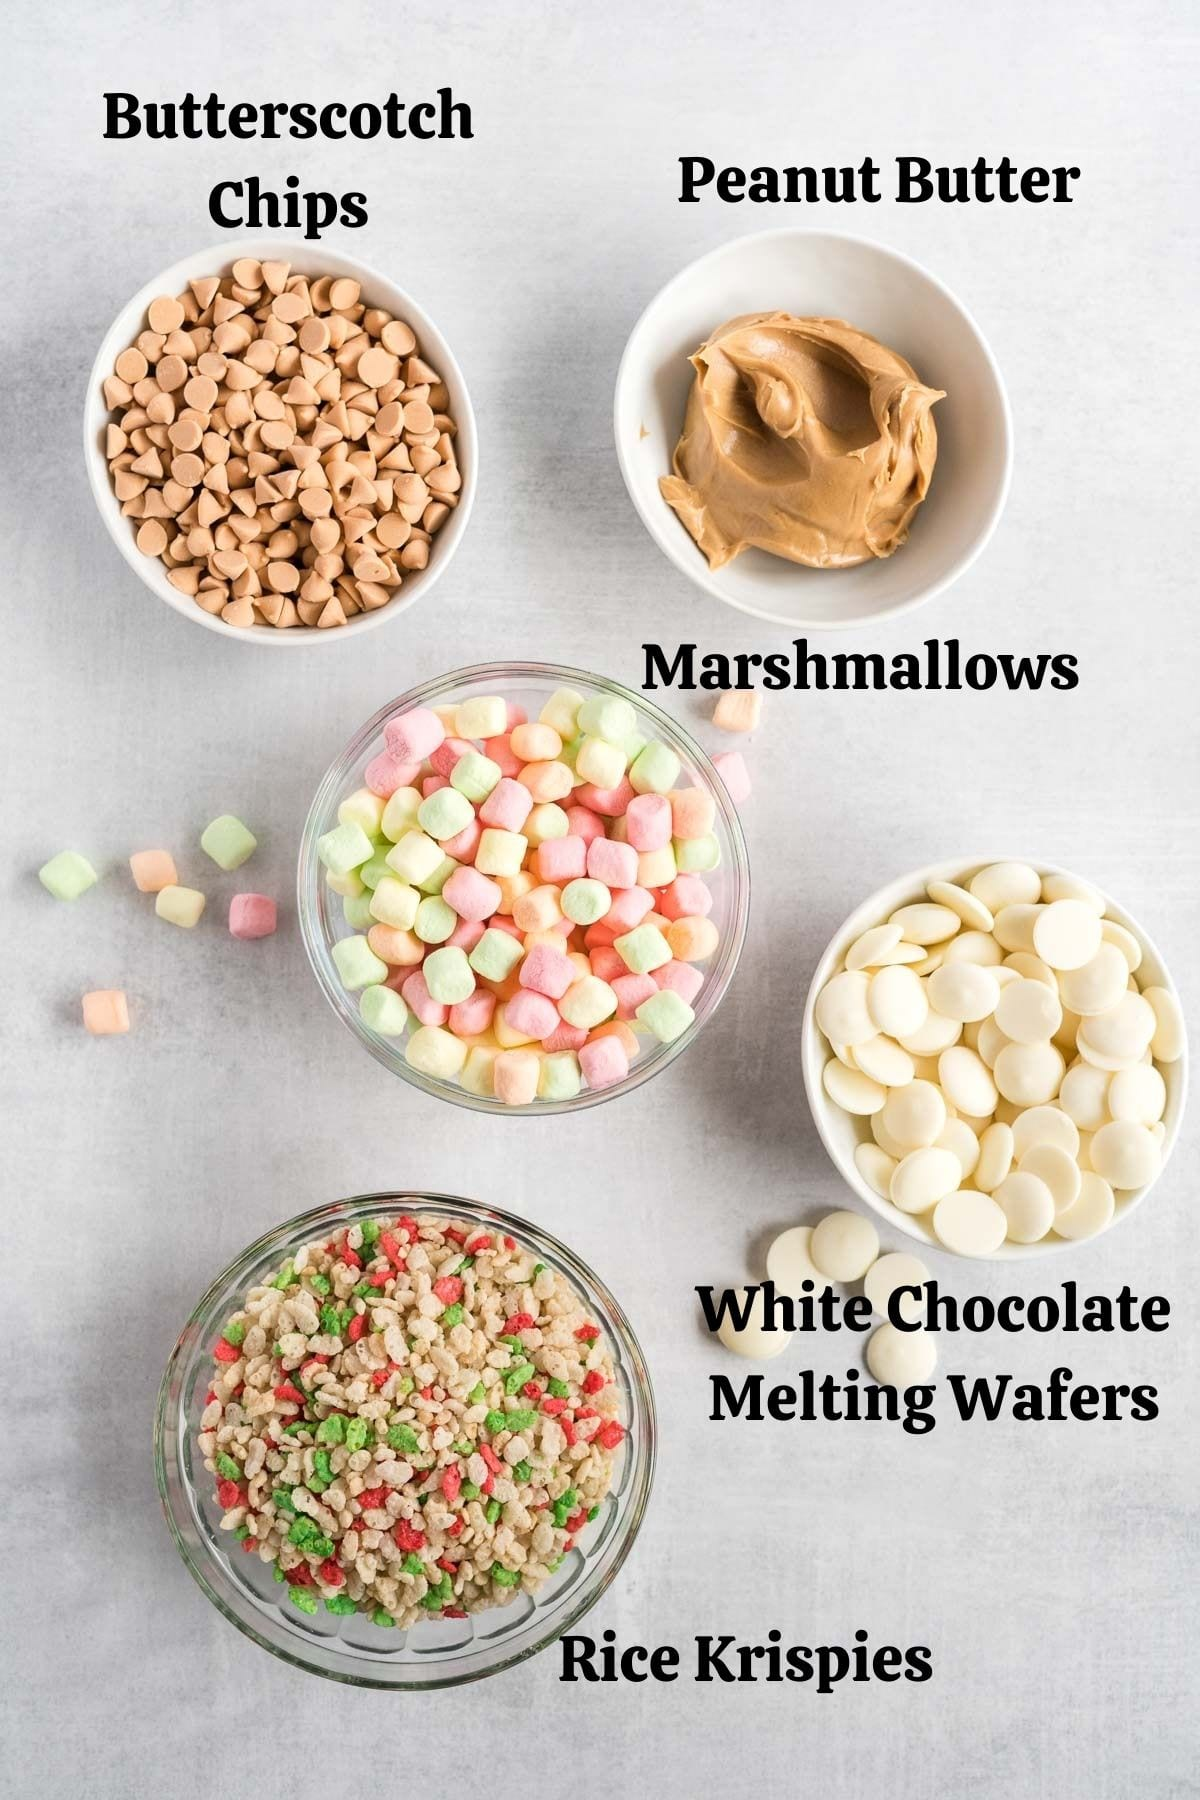 Ingredients needed for avalanche cookies.